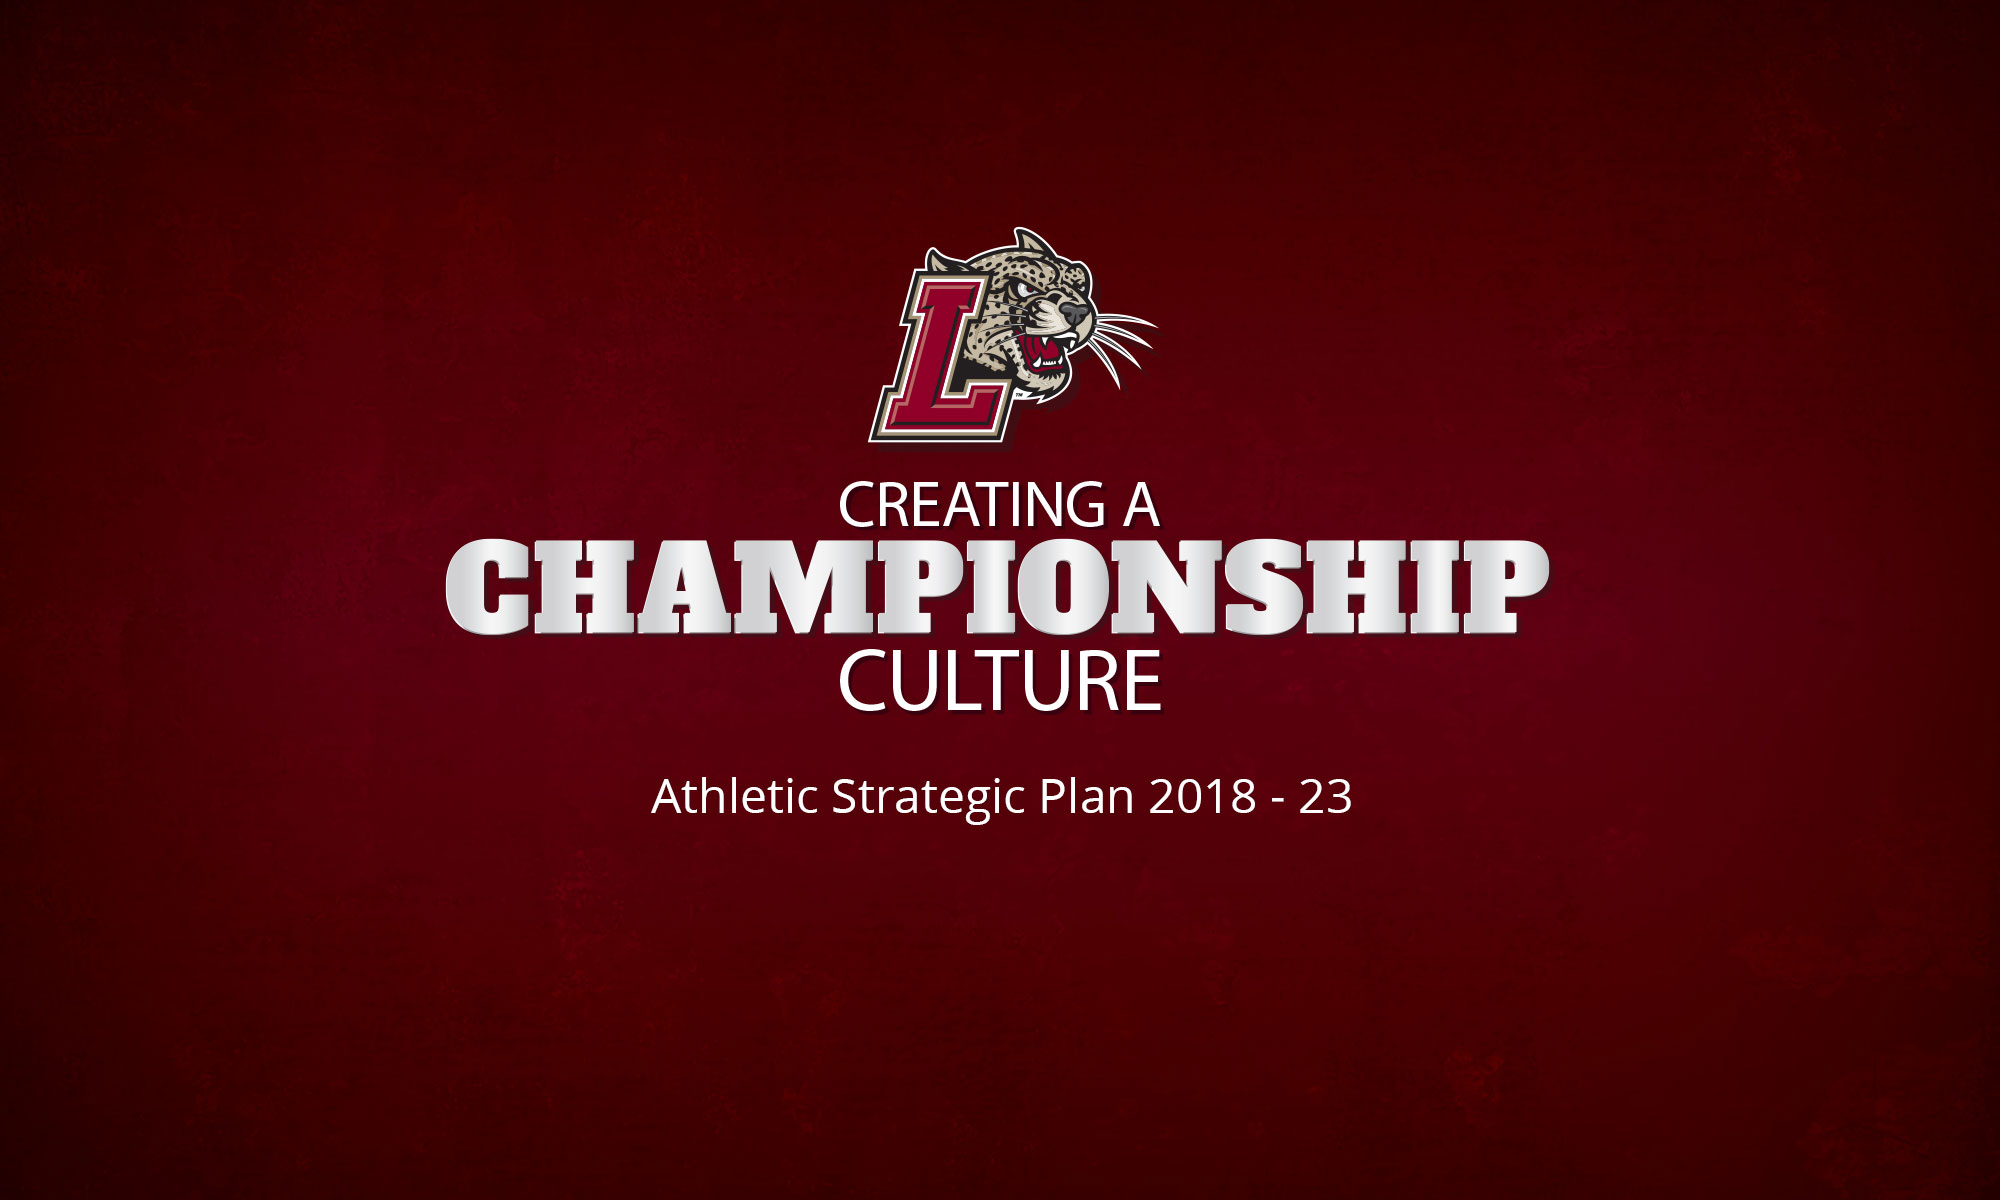 Athletic Strategic Plan